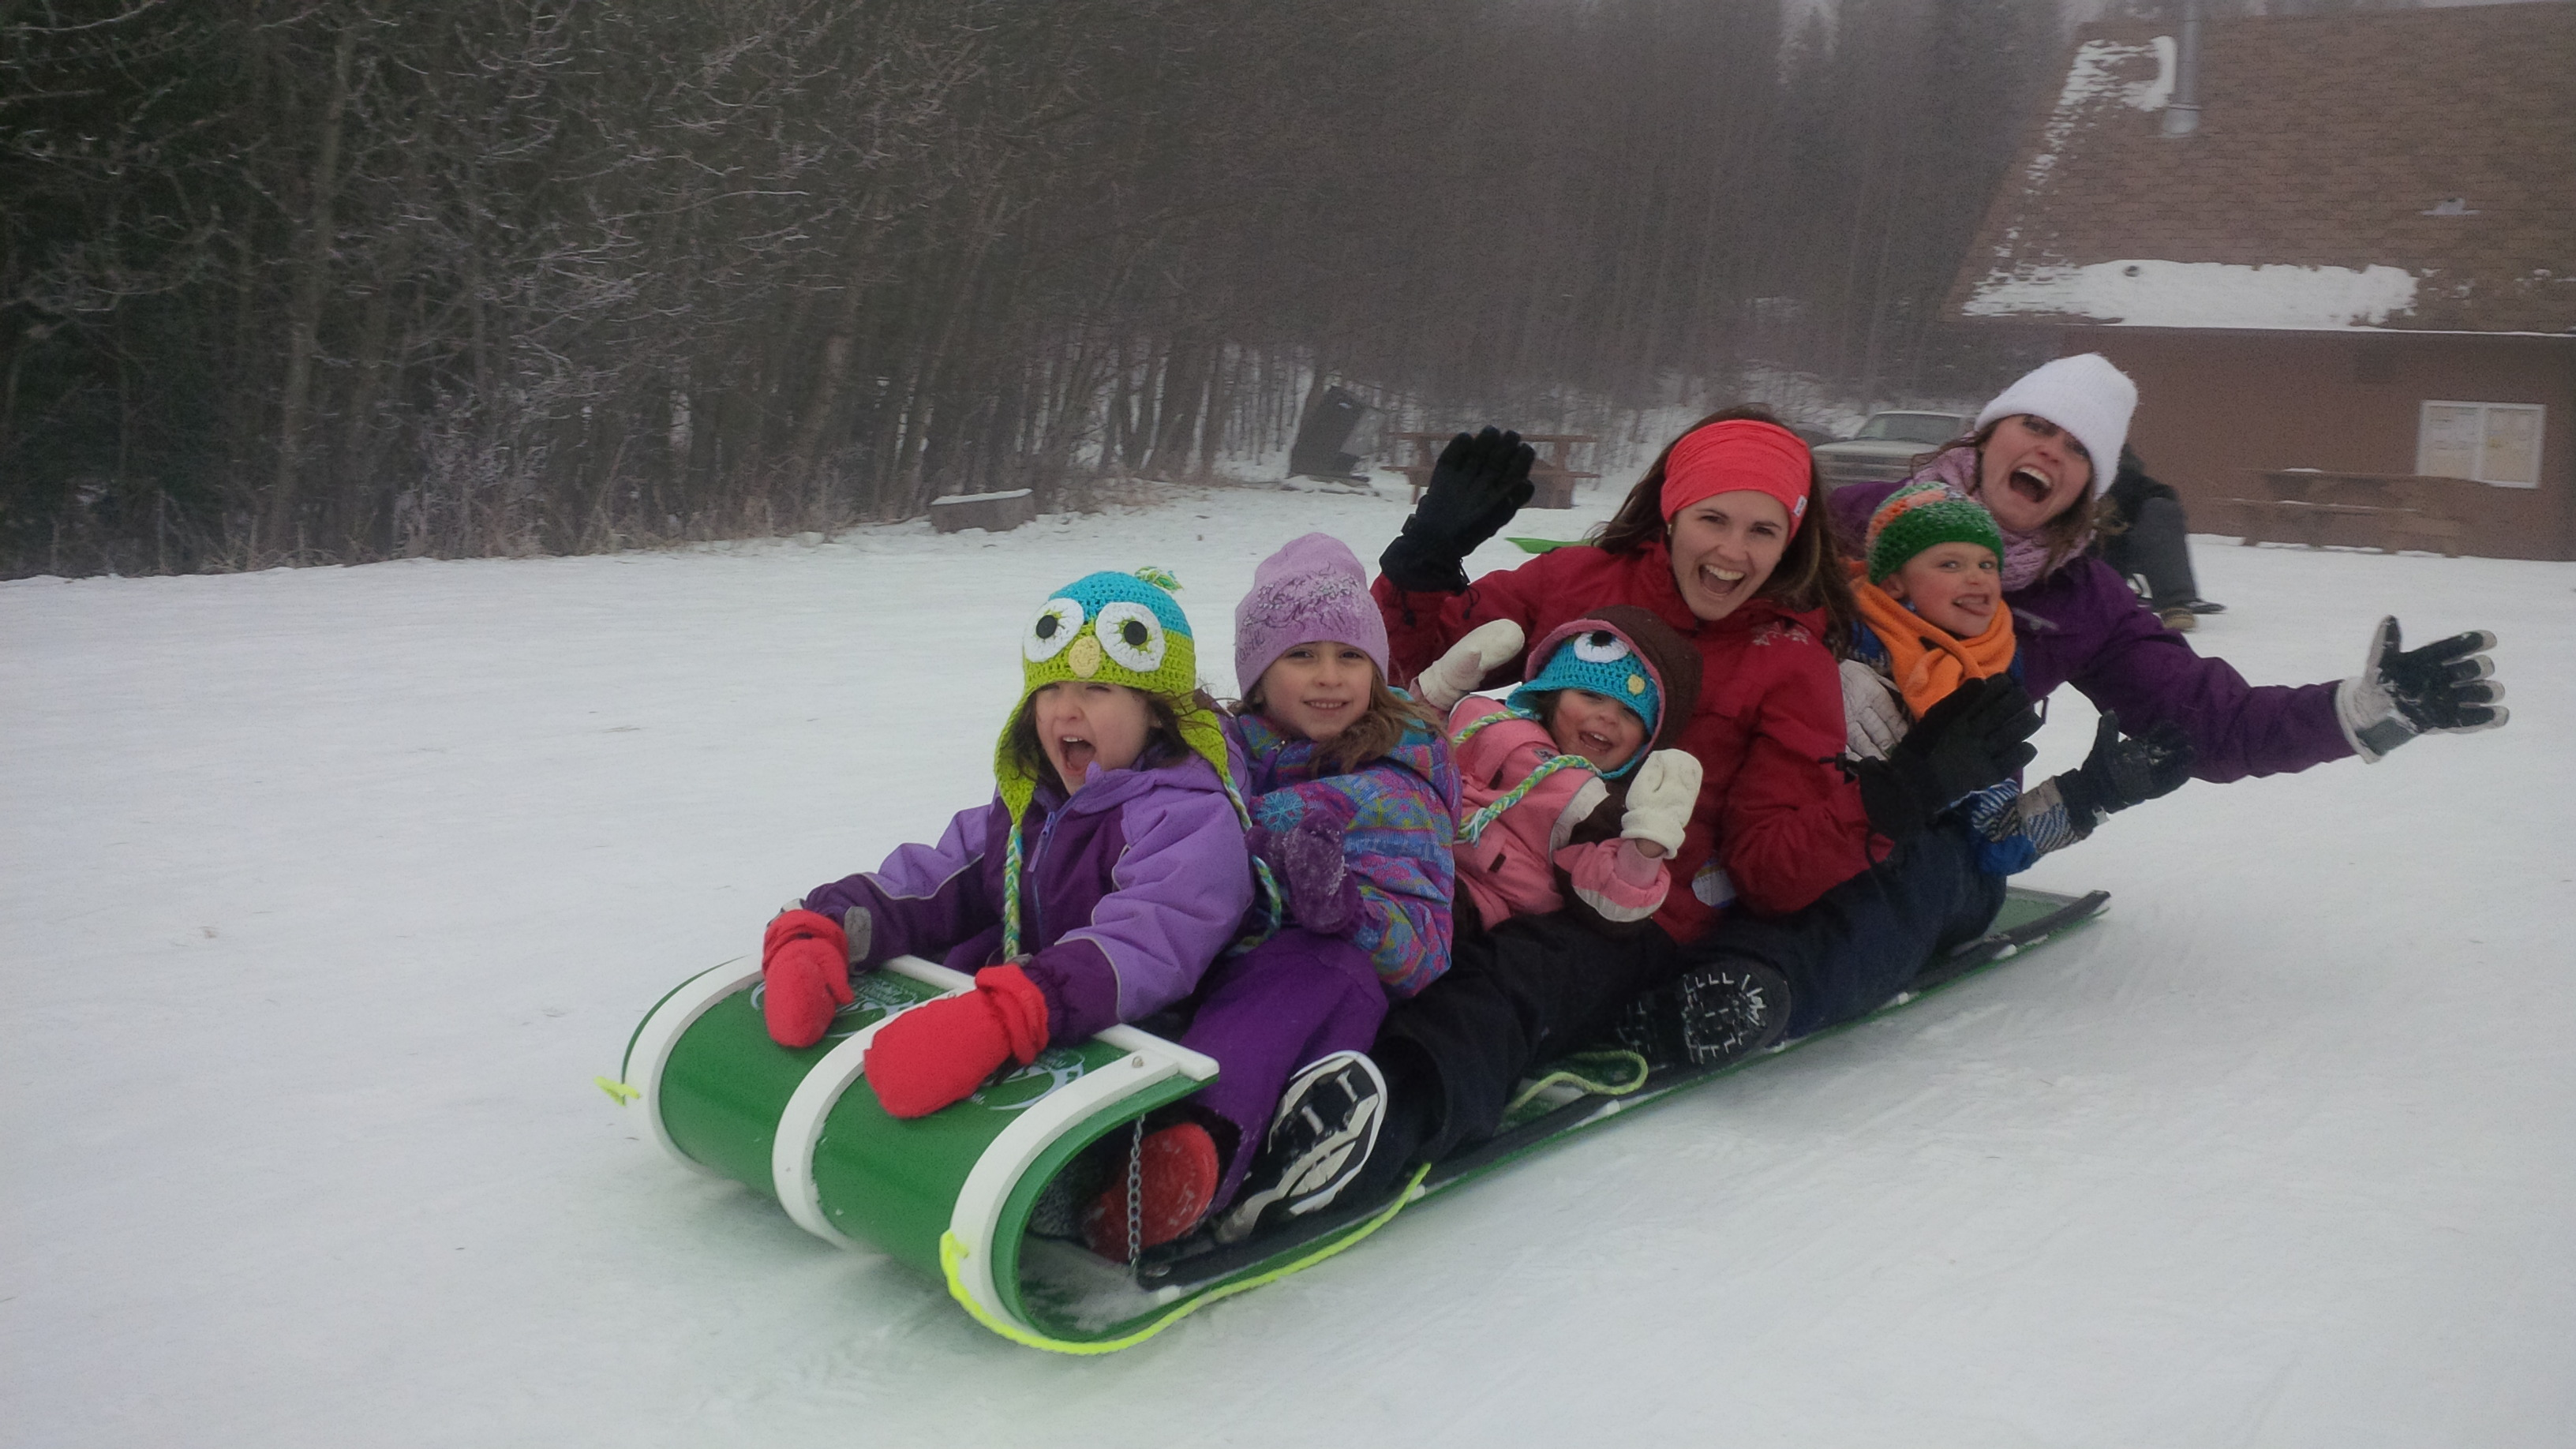 It's a Winter Wonderland! Perfect for your outdoor winter fun!